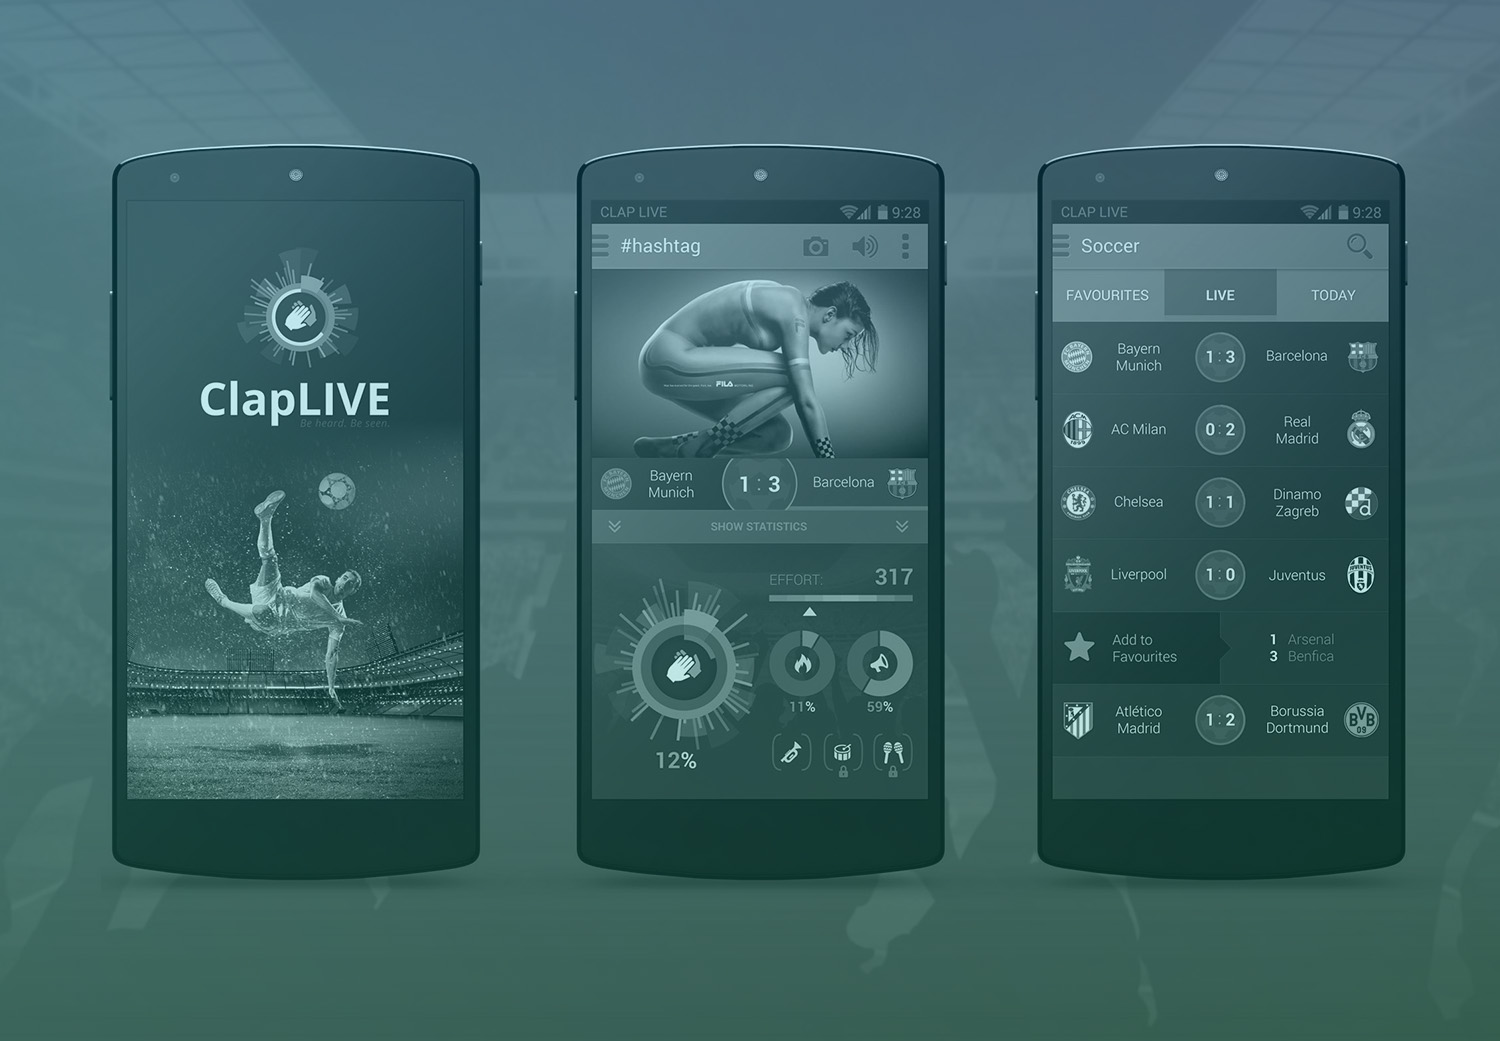 ClapLIVE - mobile application for encouraging favourite sport teams during the live matches